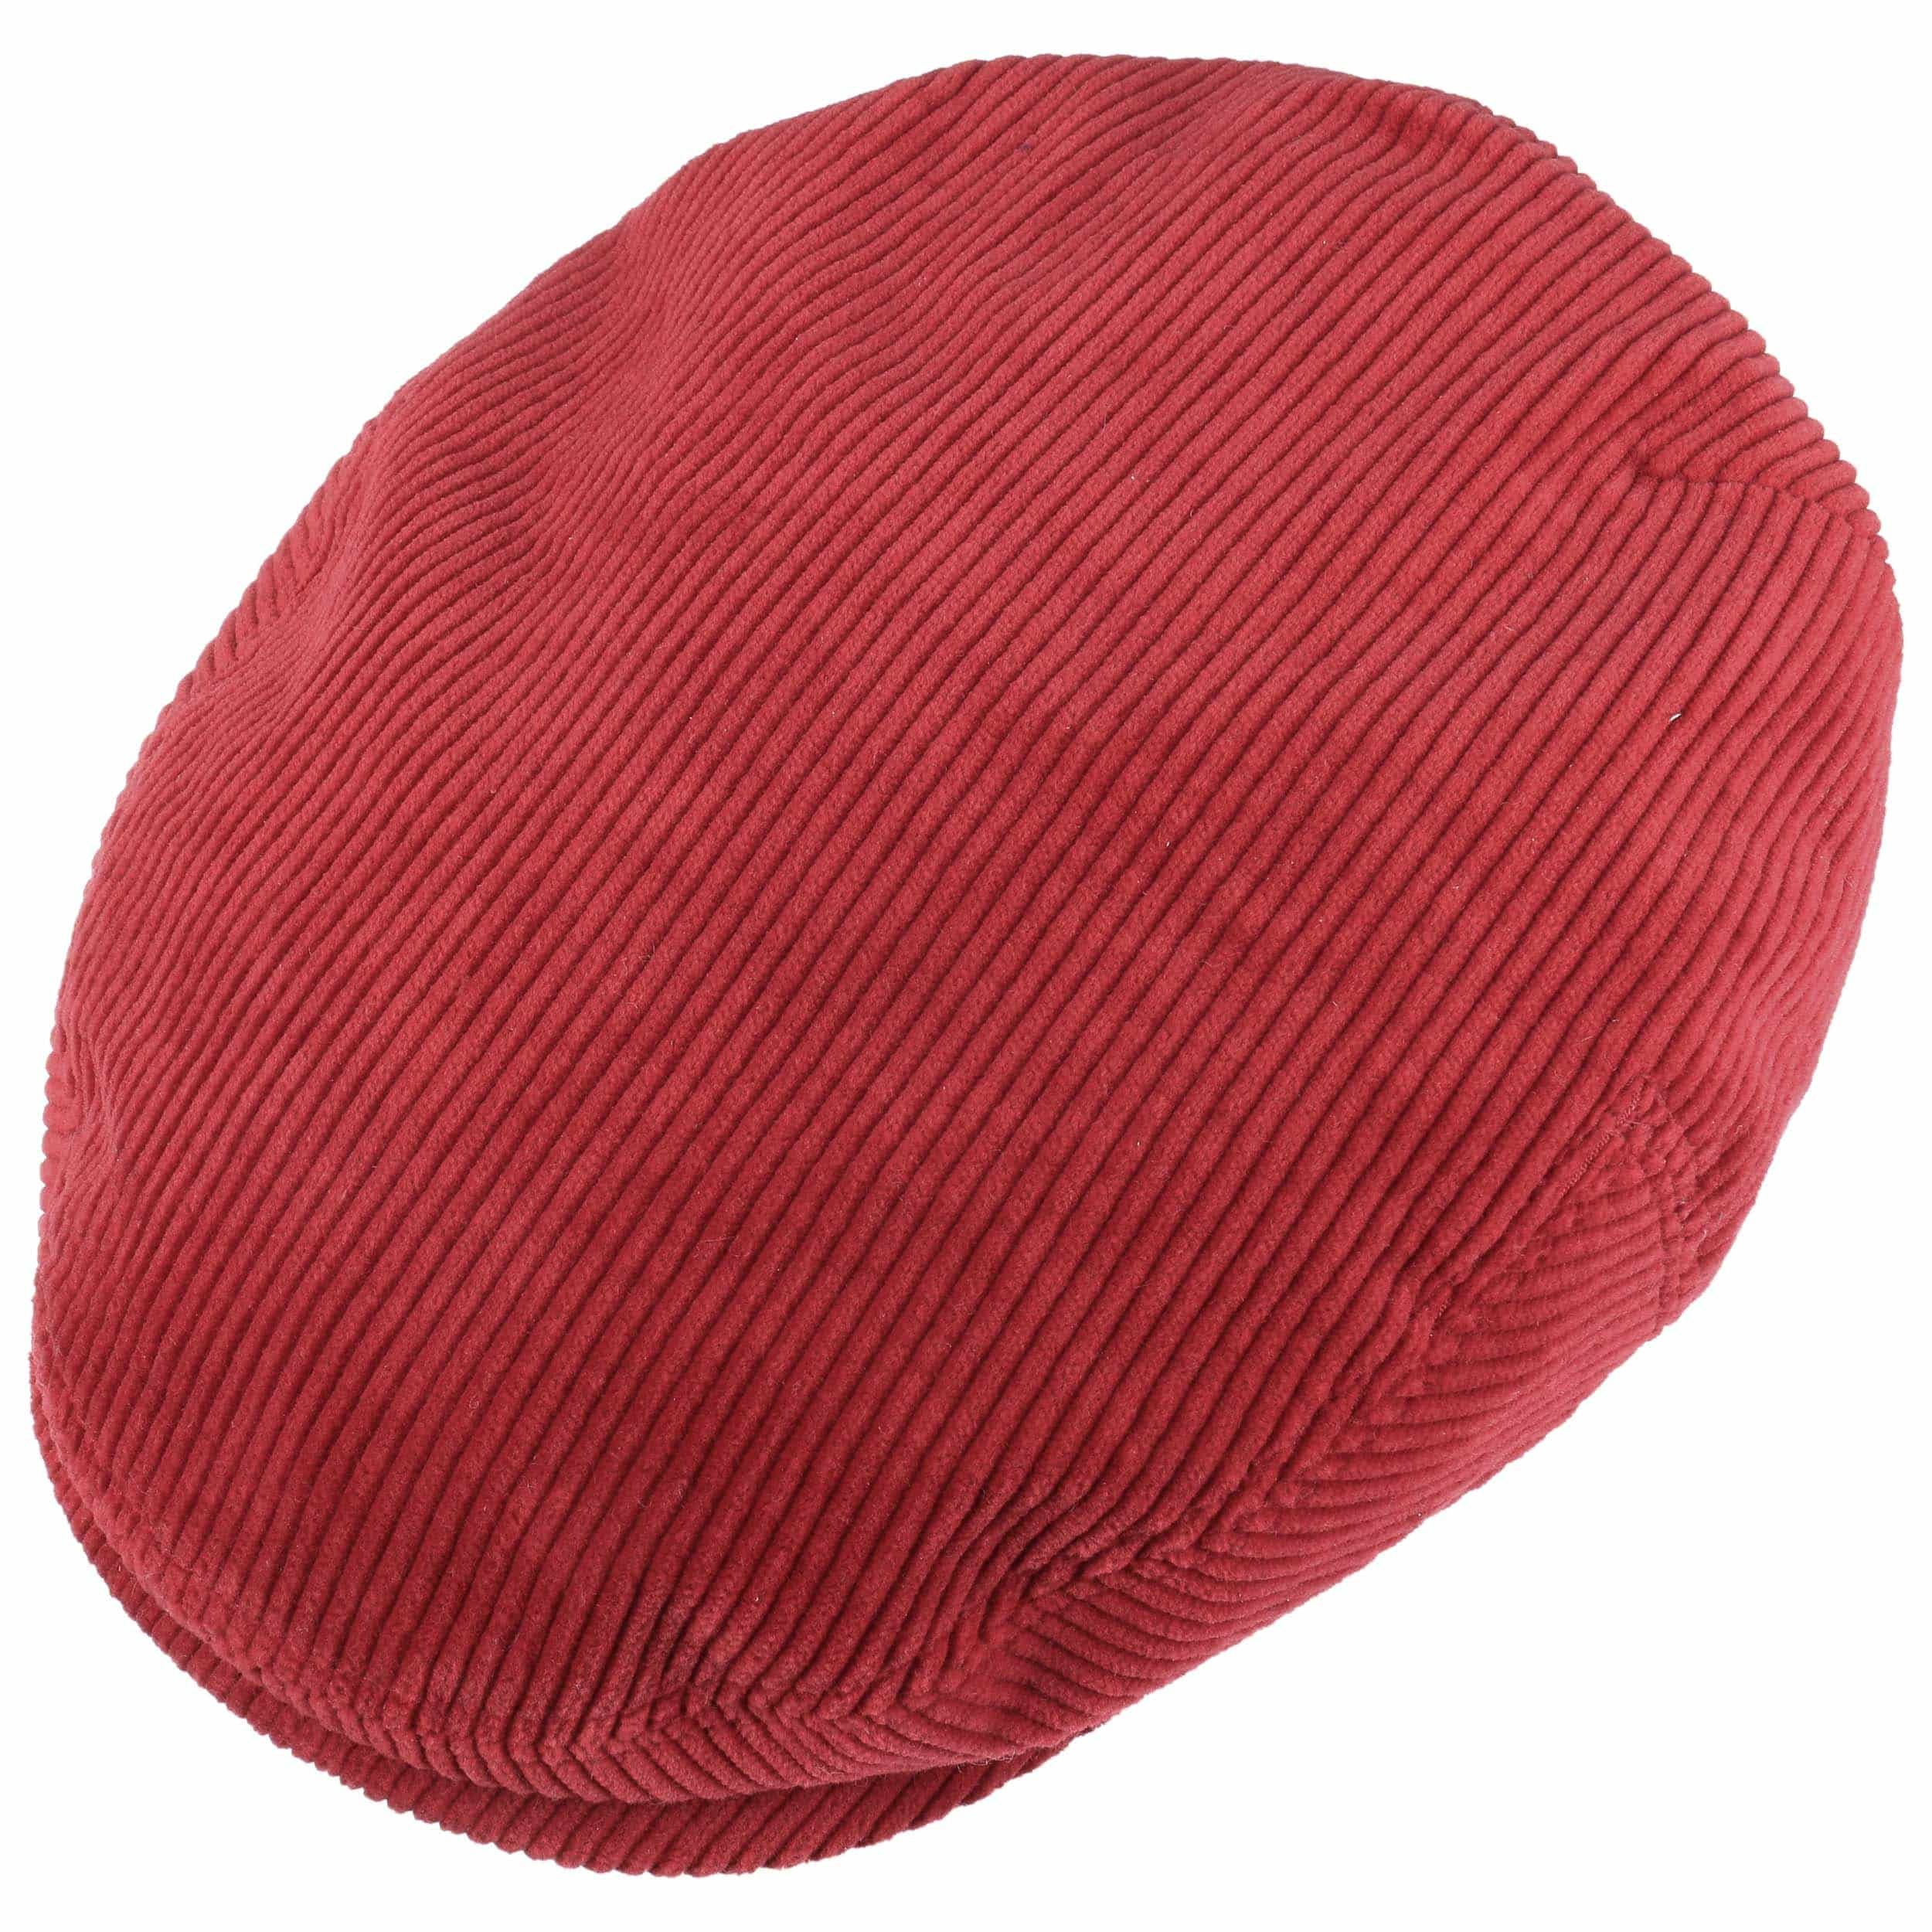 HF12GHFHI Unisex Knit Hat Slouchy Fine Knit for Mens Womens Beanie Hat